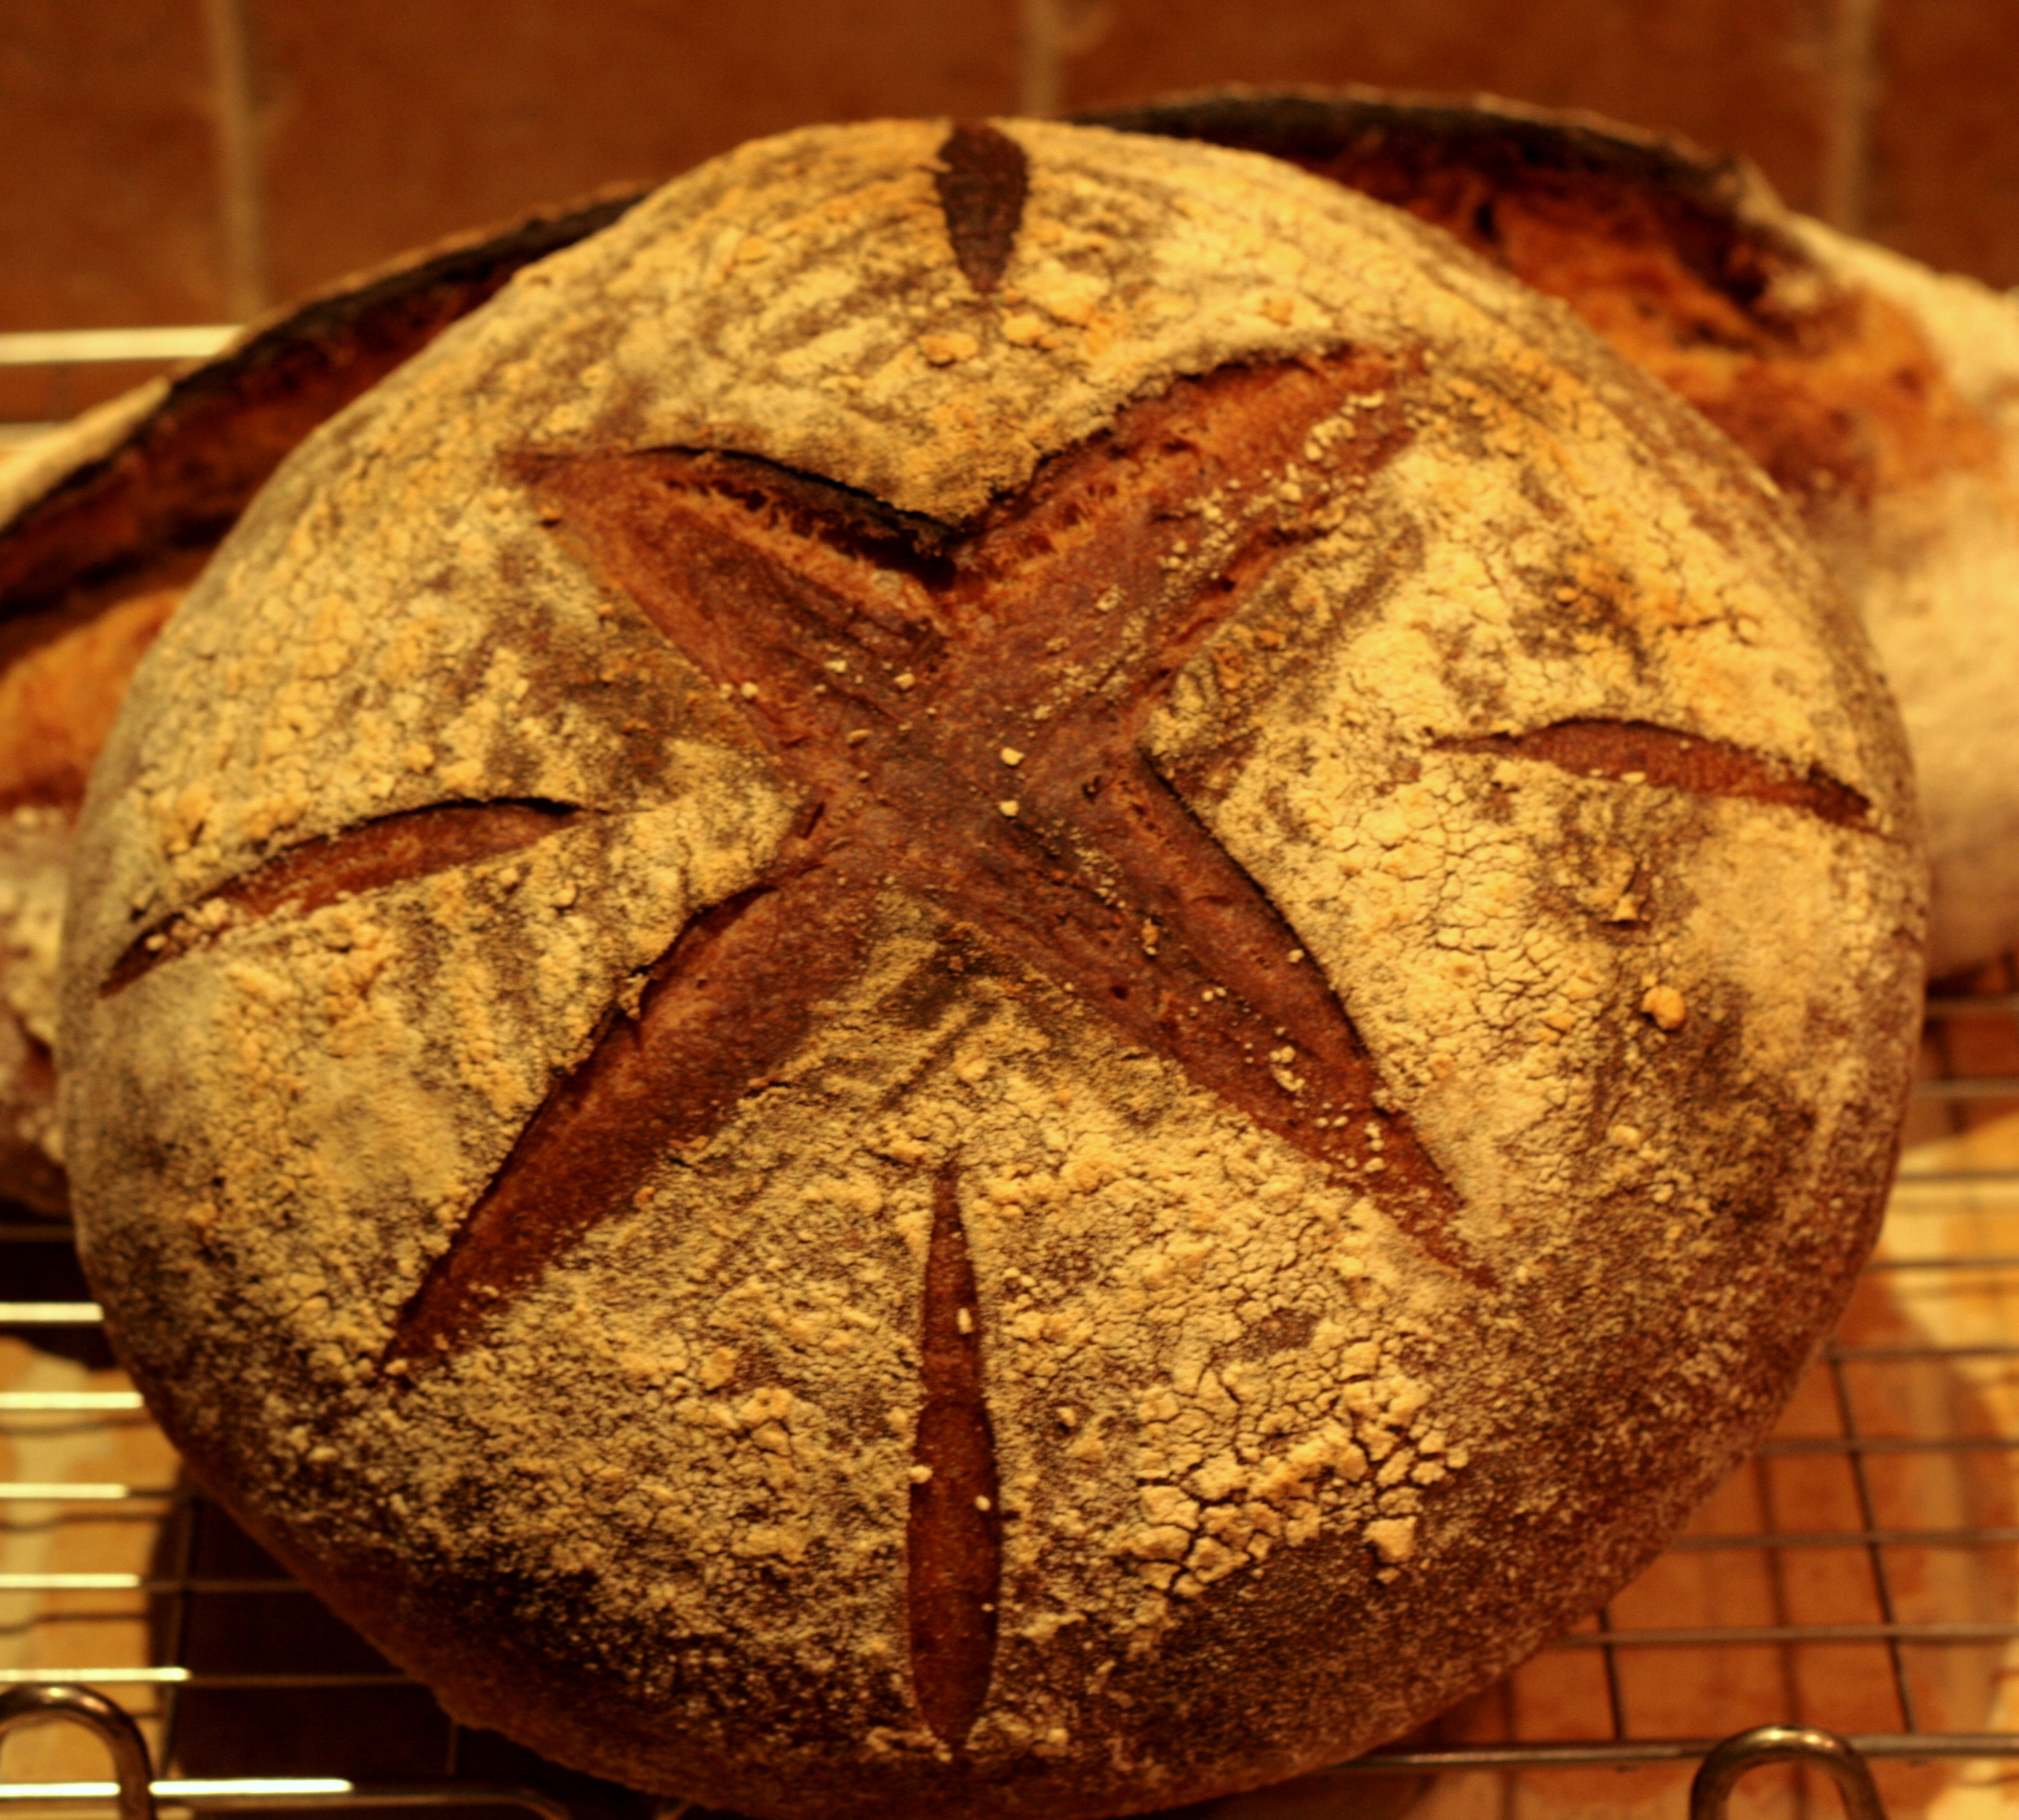 White and kamut sourdough loaf: round with star scoring